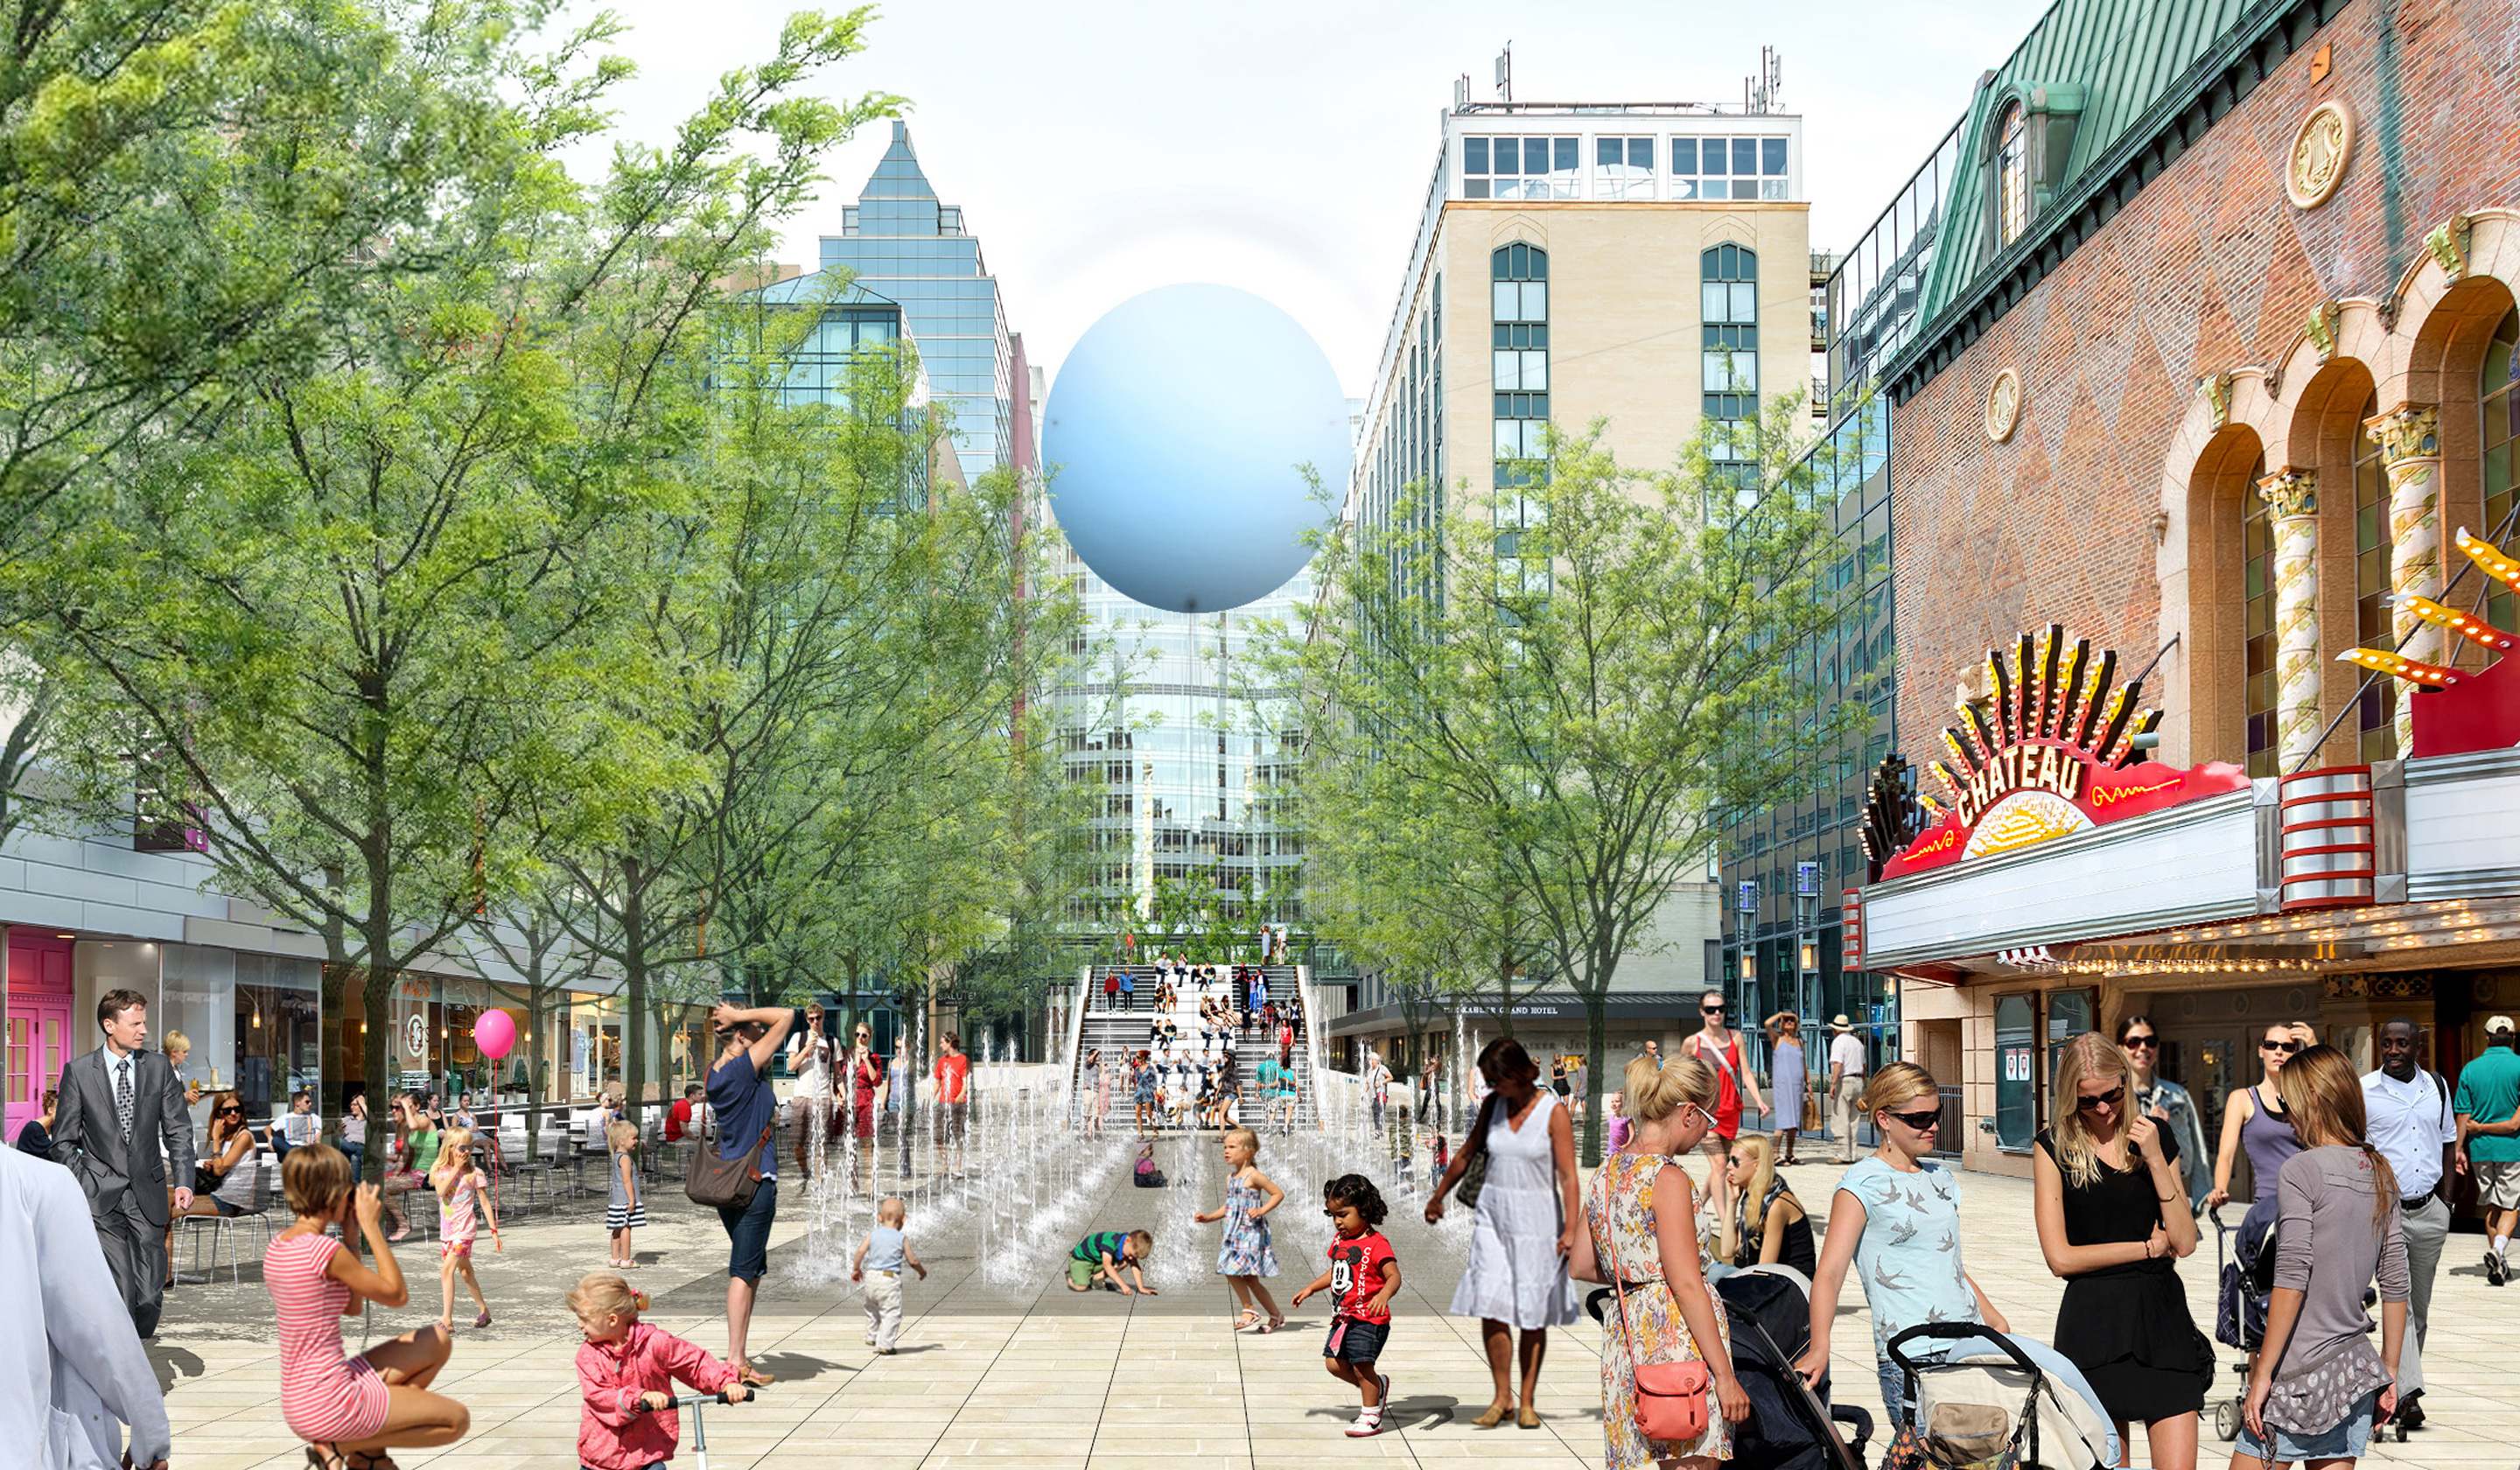 heart of the city public space design